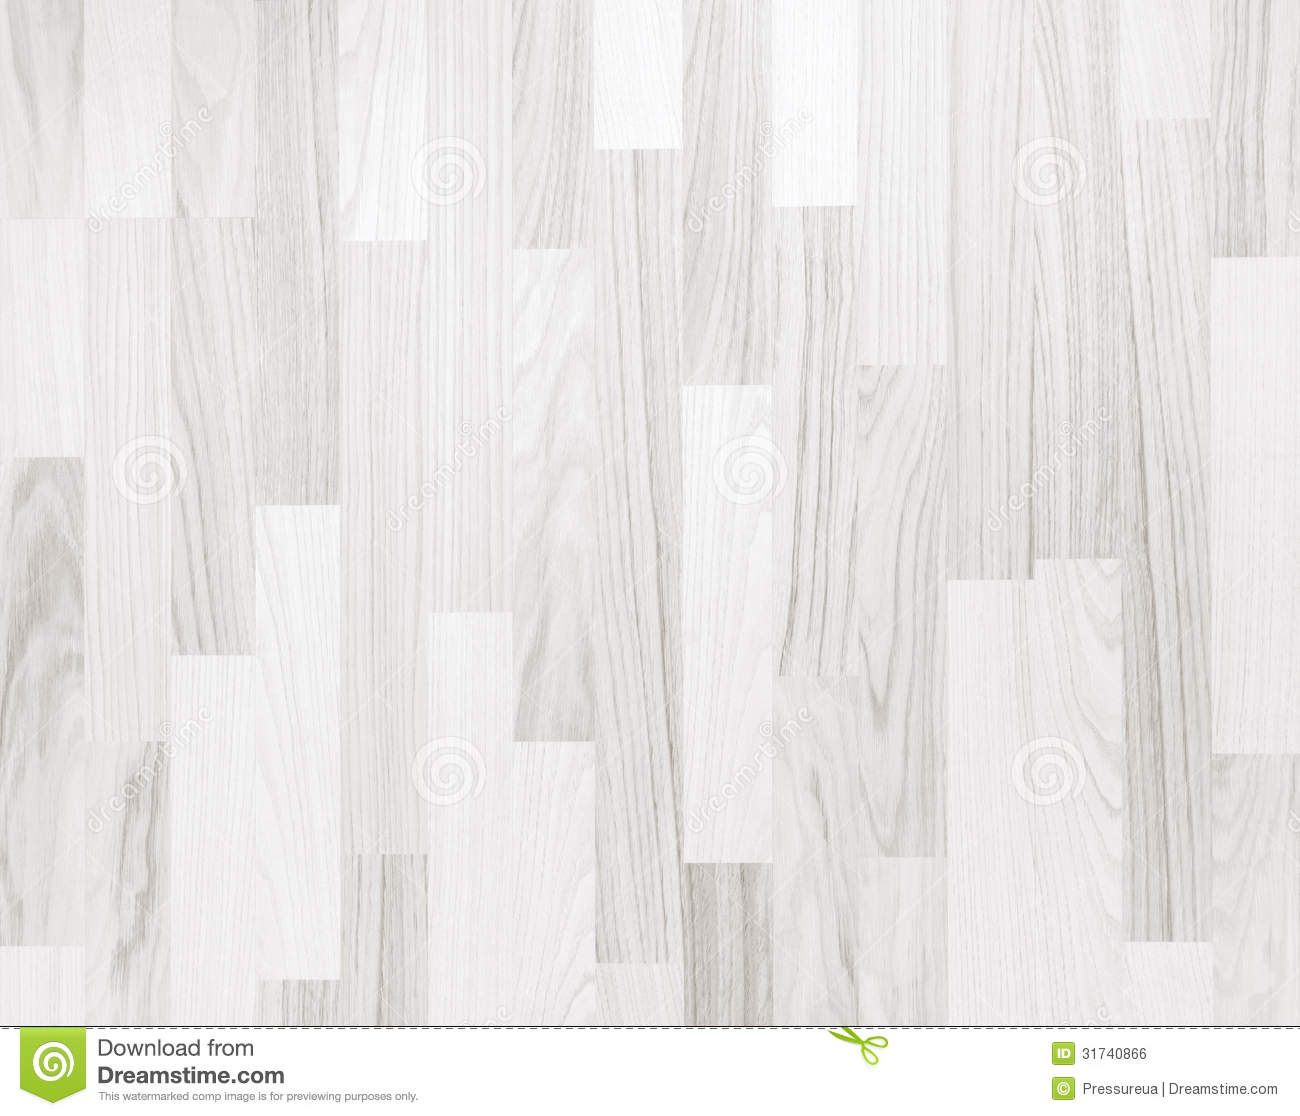 texture en bois de parquet blanc photo stock image du blanc luxe 31740866. Black Bedroom Furniture Sets. Home Design Ideas